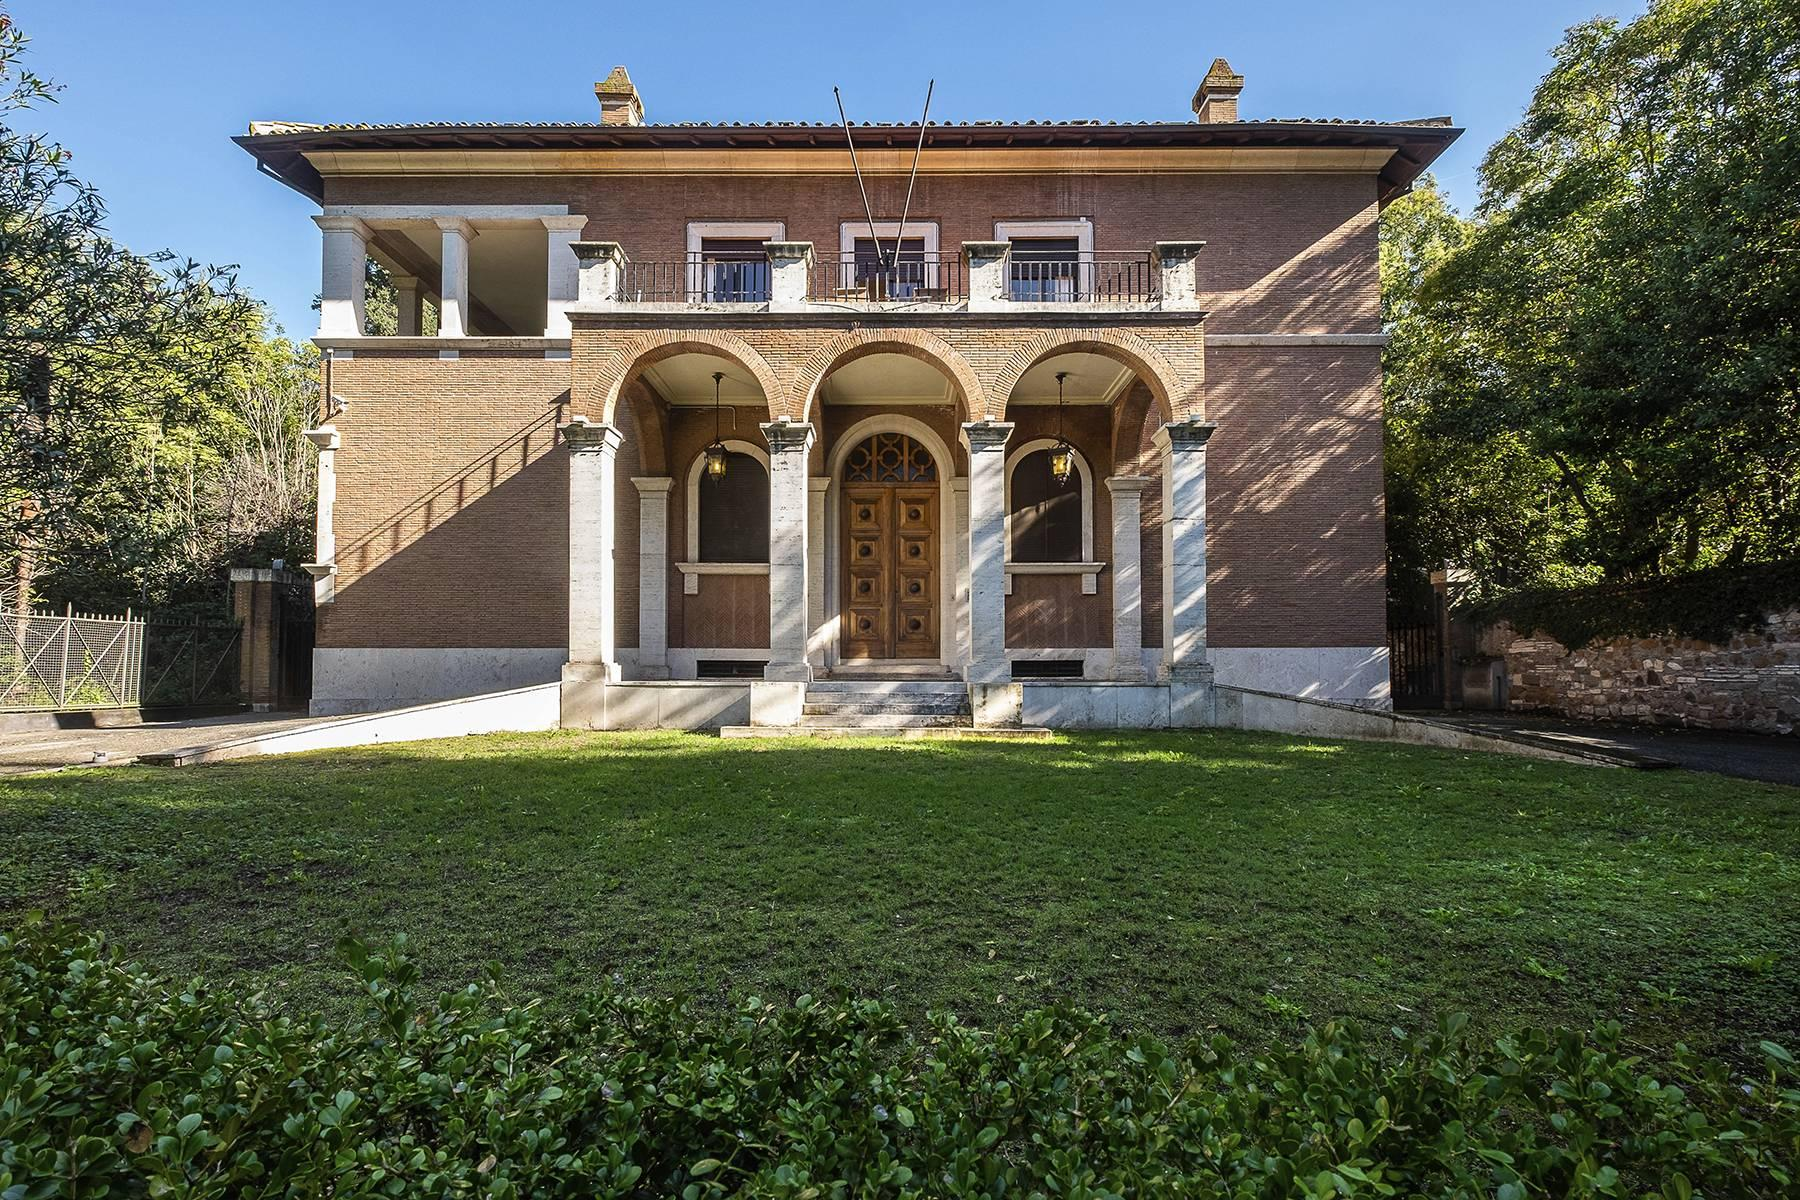 Elegant classical  Villa in the heart of Rome's archaeological ruins - 1